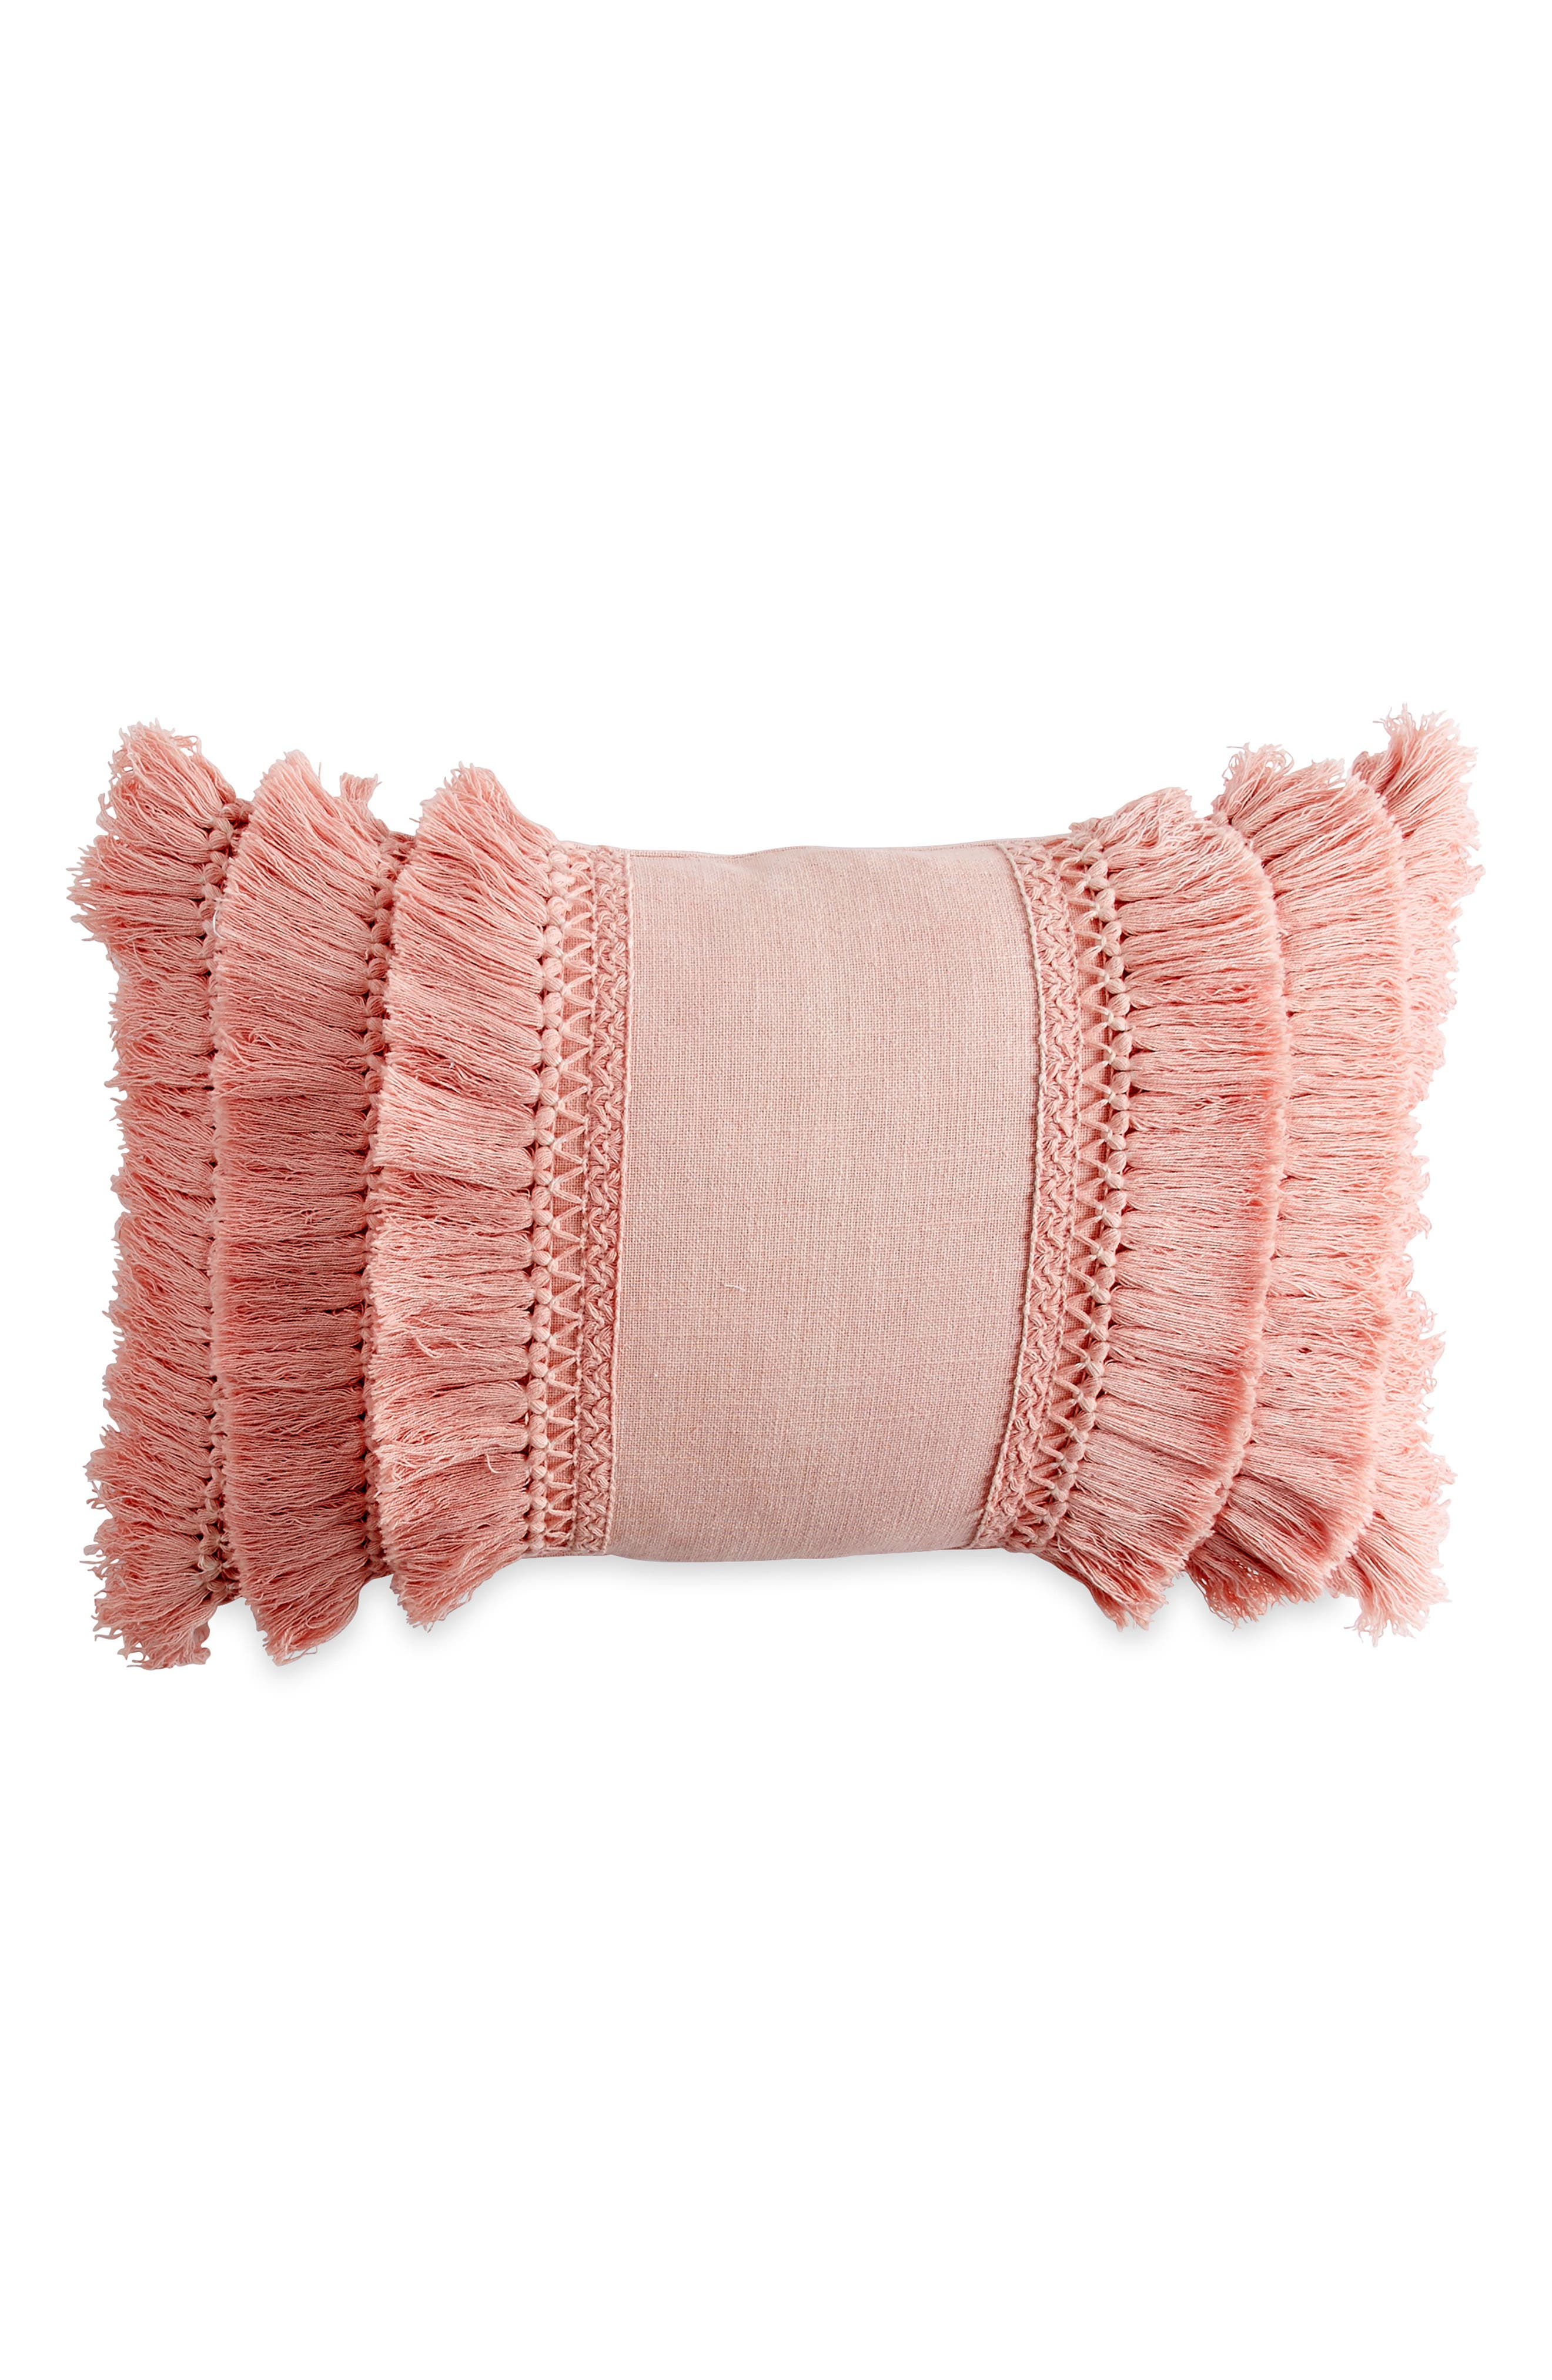 Tiered fringe makes this plush accent pillow a vintage-chic addition to your bedroom decor. Style Name: Peri Home Fringe Pillow. Style Number: 5367401. Available in stores.